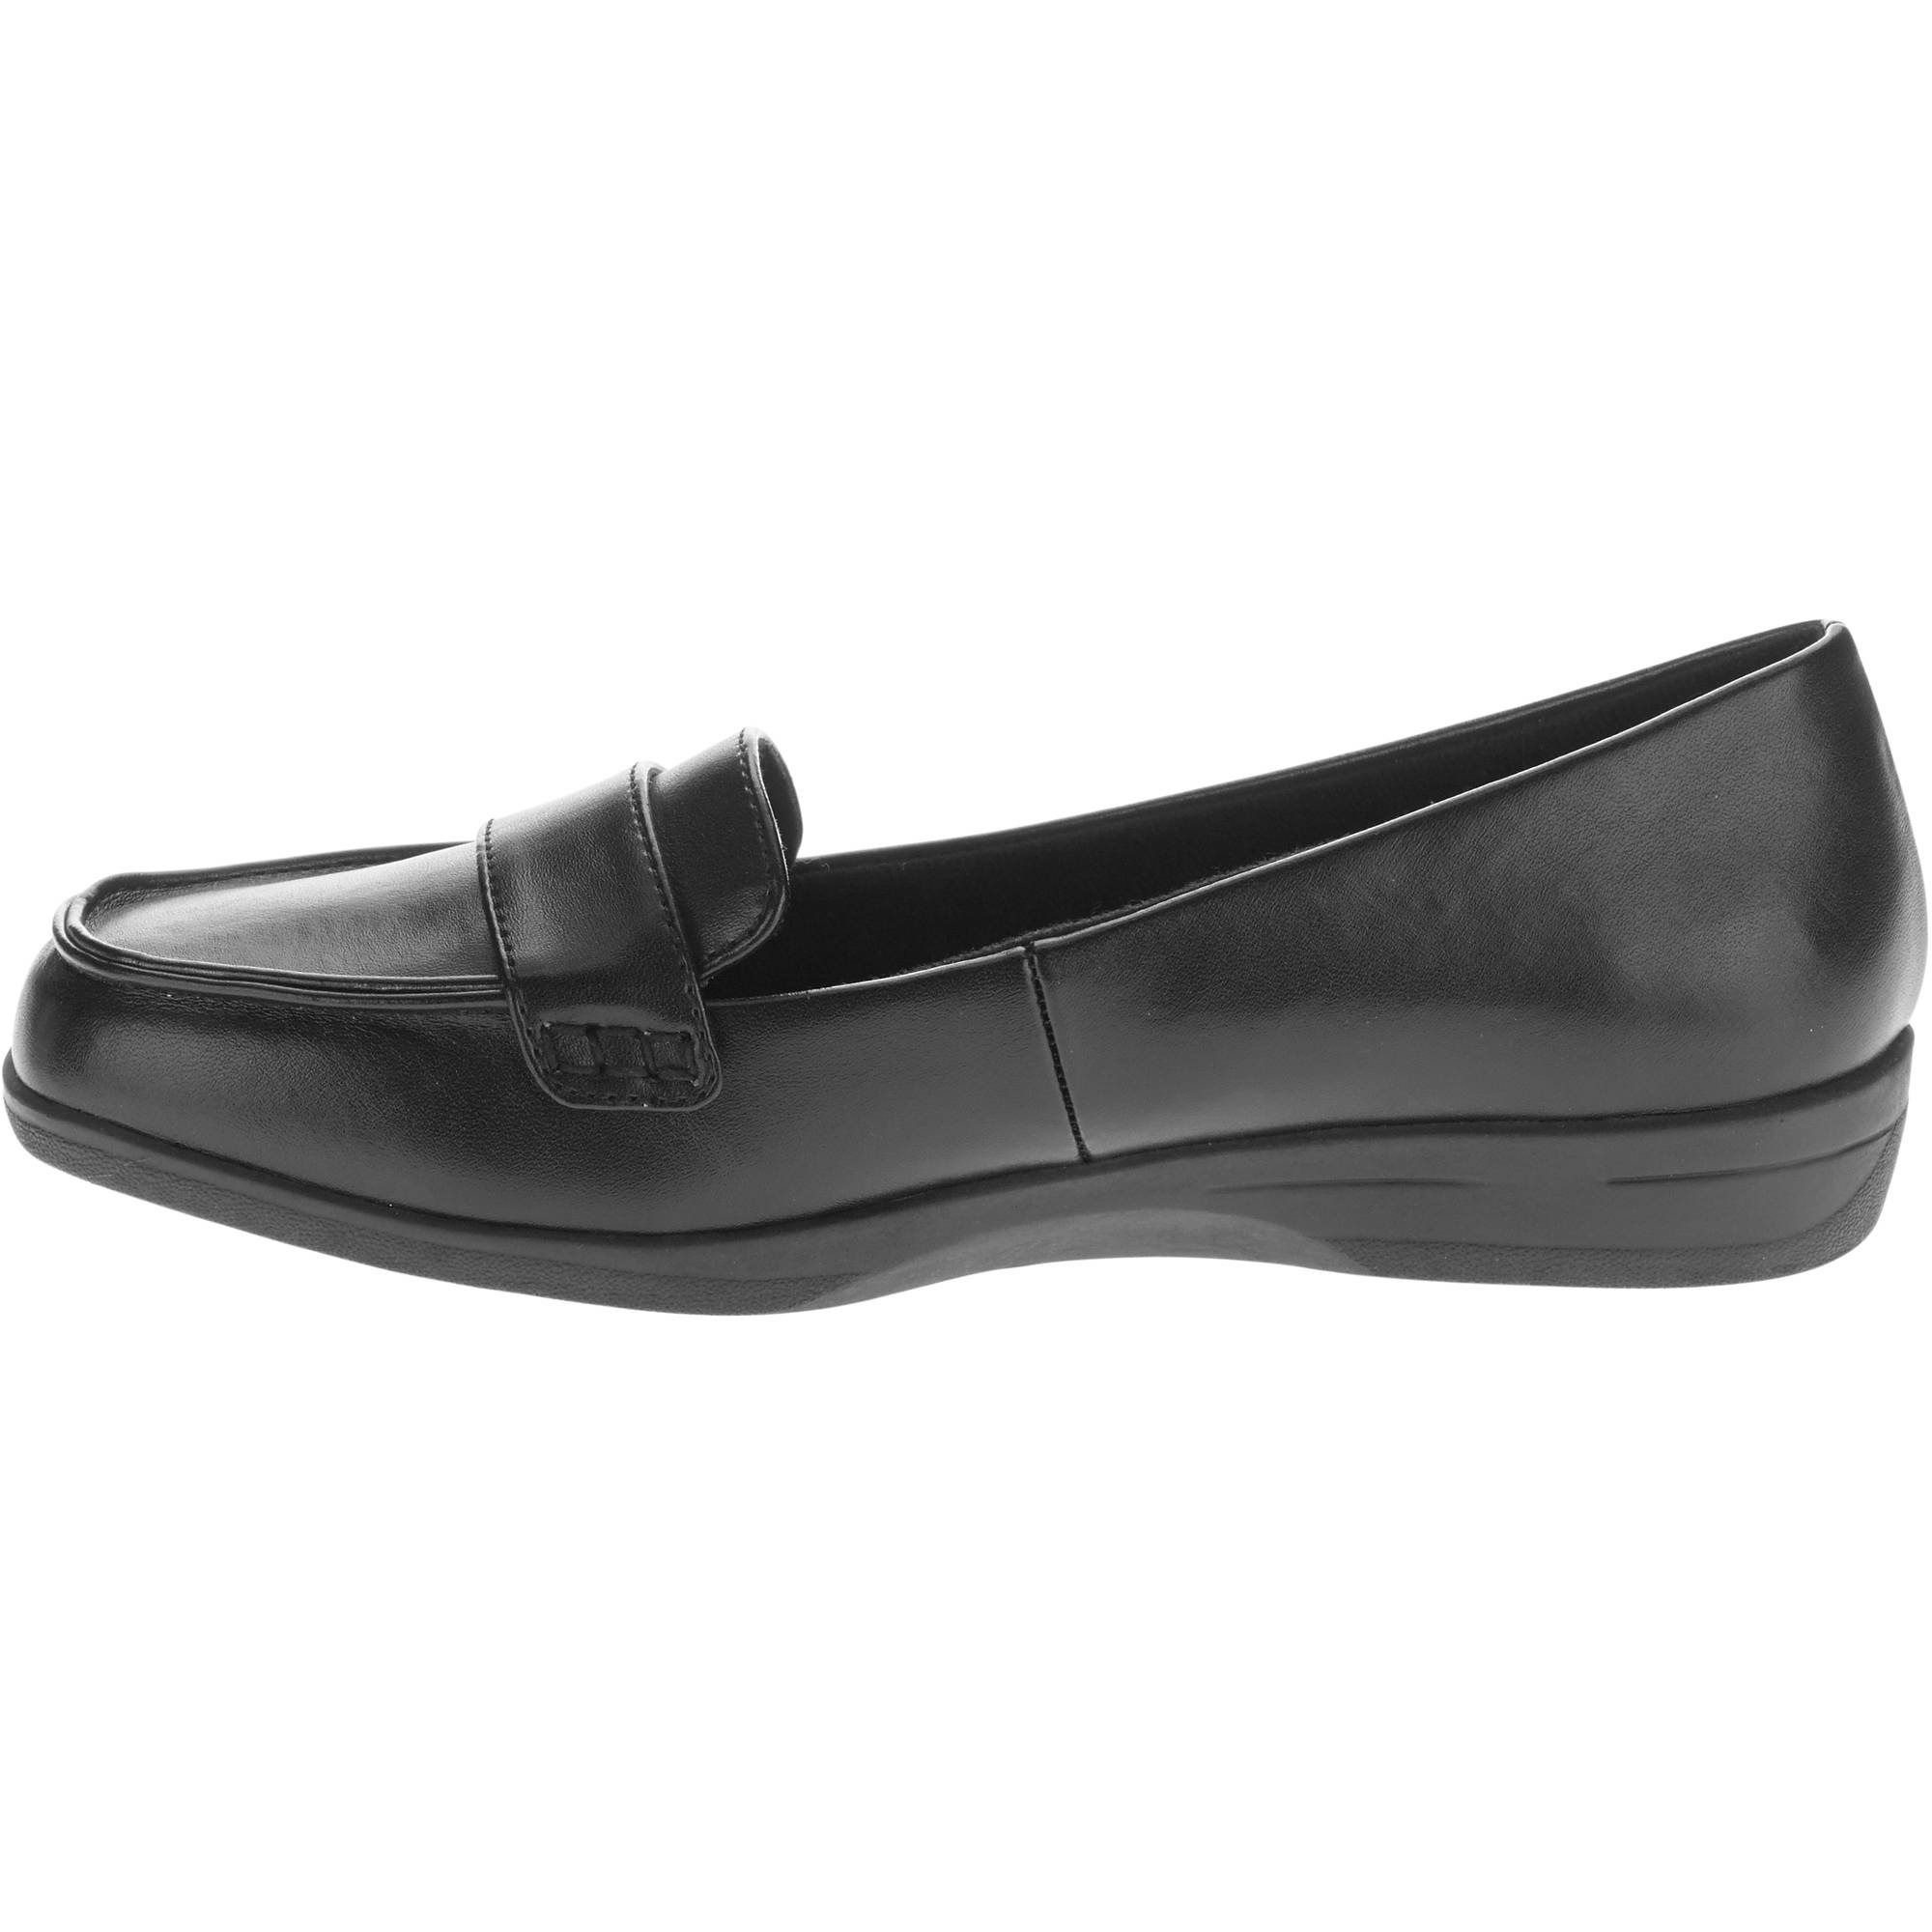 7c53b05d3e Women s Casual Slip-On Dress Shoe - Walmart.com